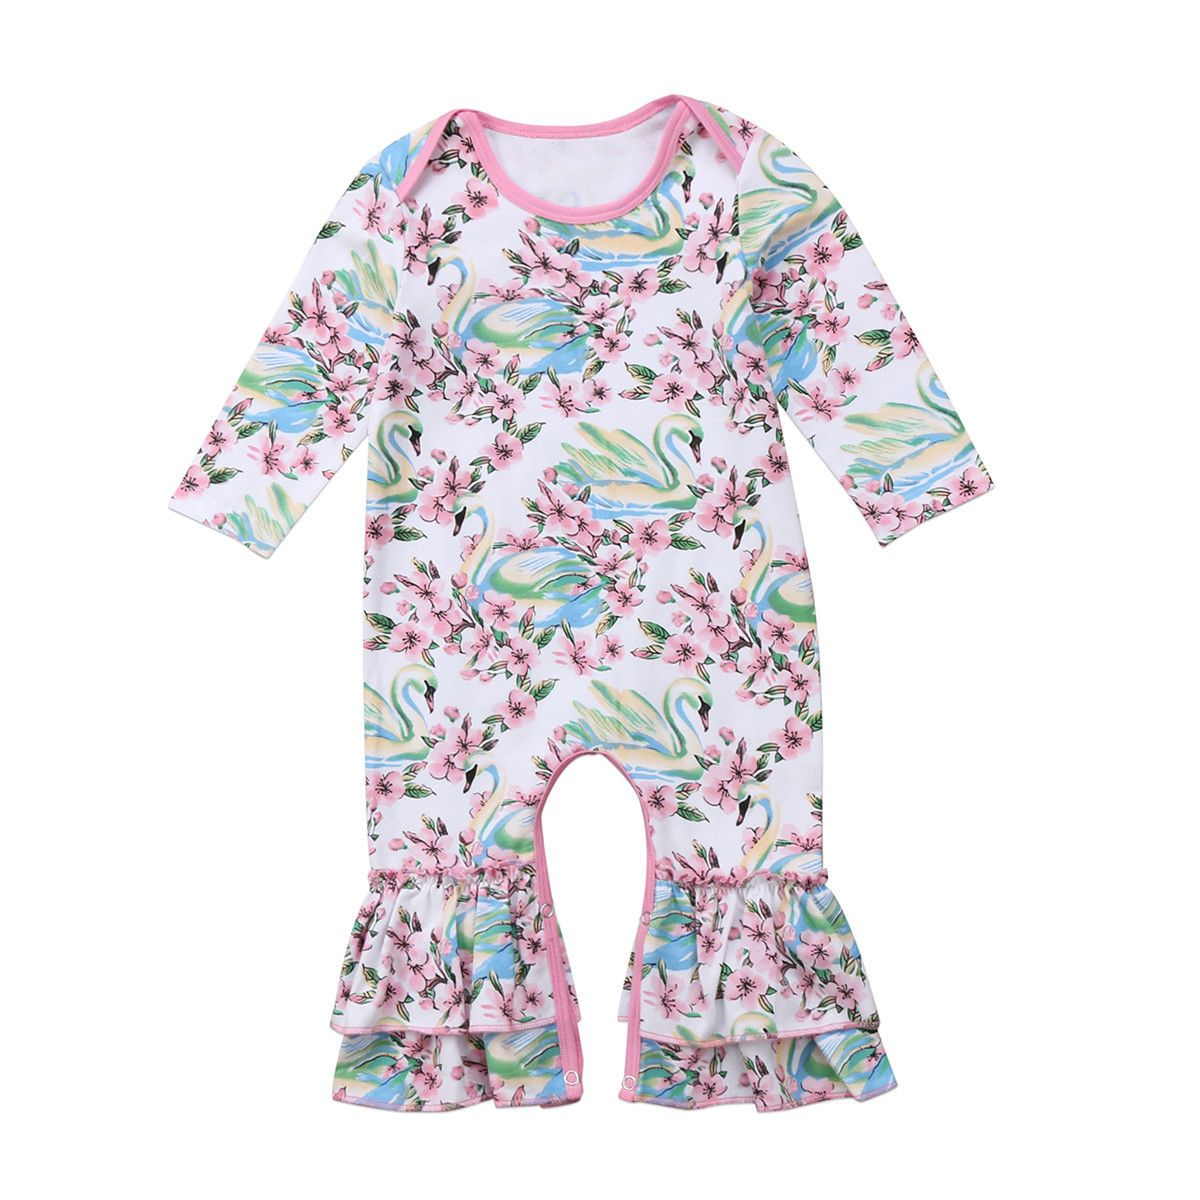 38ebea28c39d Usborn Kids Baby Girls Infant Romper Jumpsuit Bodysuit Clothes Outfits  0-24M  ebay  Fashion